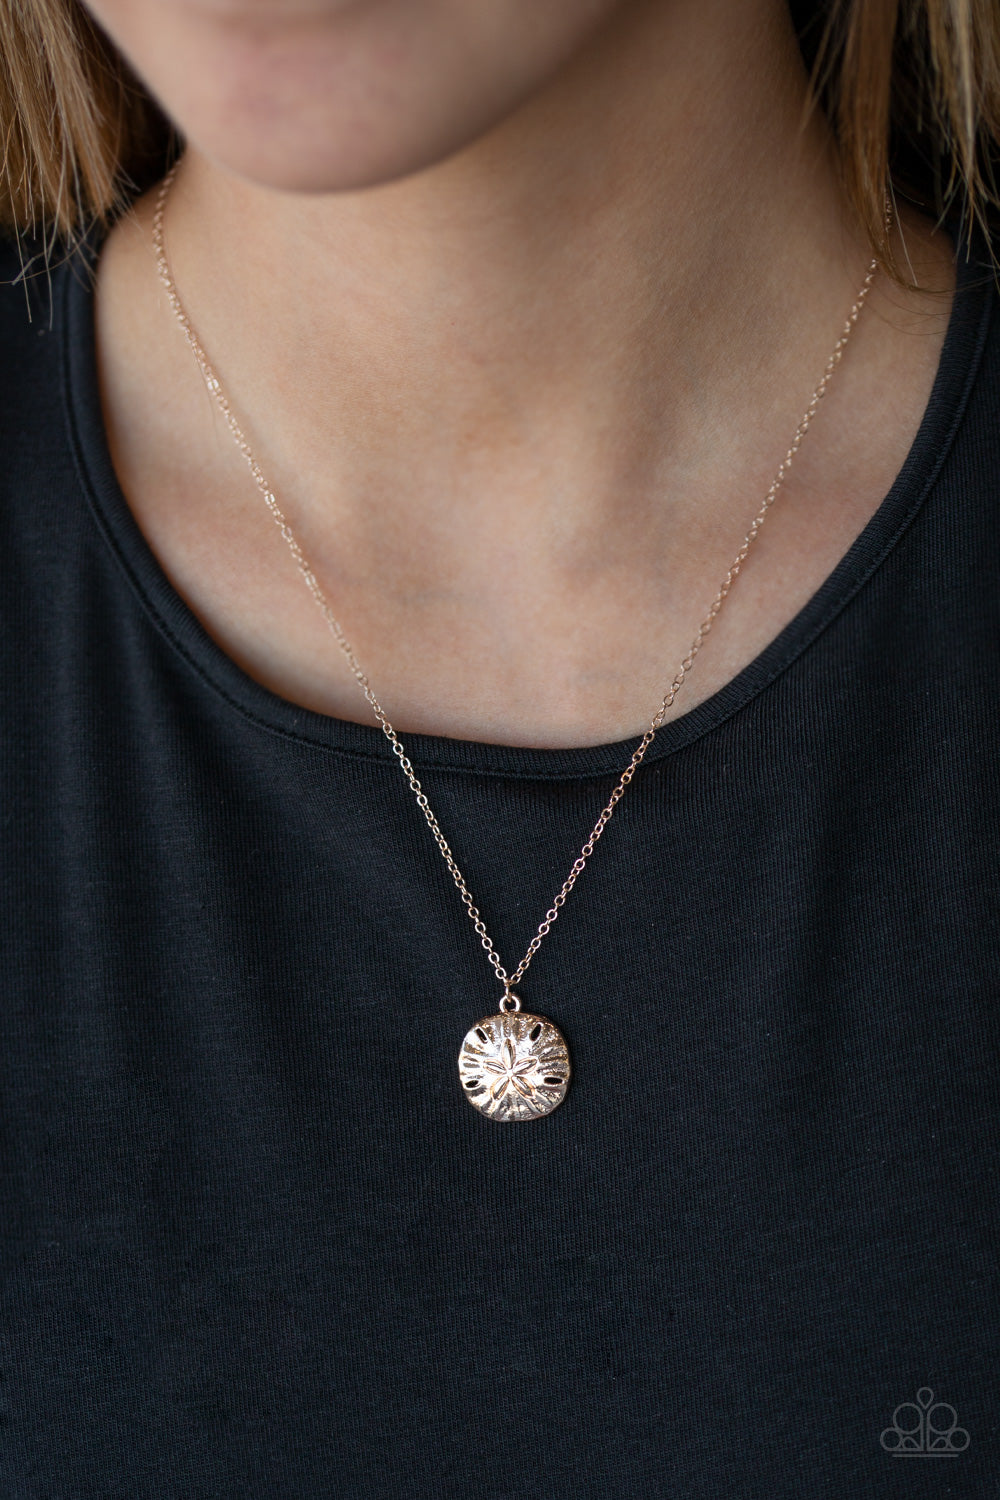 Sand Dollar Shores Rose Gold Necklace Paparazzi Accessories Chic Shimmer